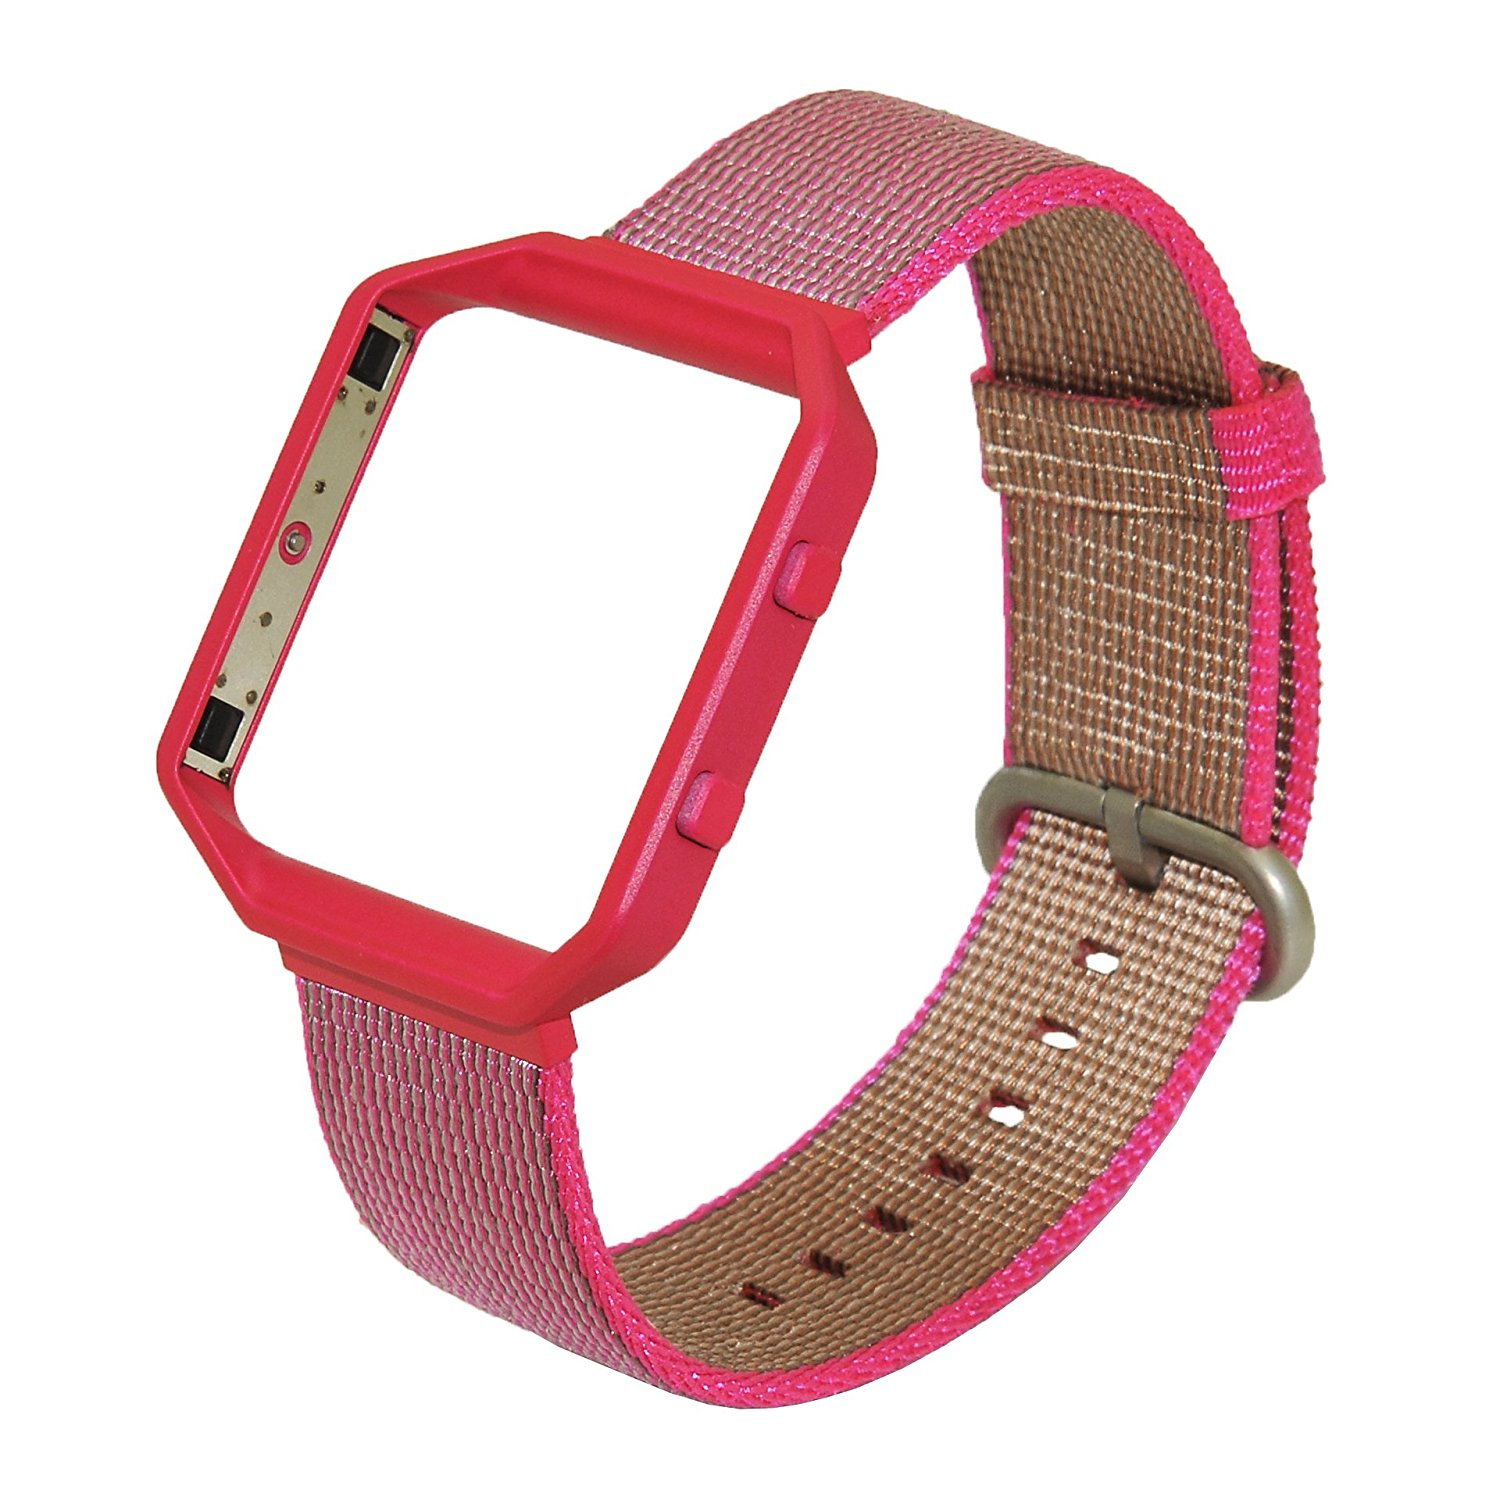 Fitbit Blaze Woven Nylon Band, No1seller Comfortable Woven Nylon Watch Band Strap Bracelet Replacement with Metal Frame For Fitbit Blaze Smart Fitness Watch